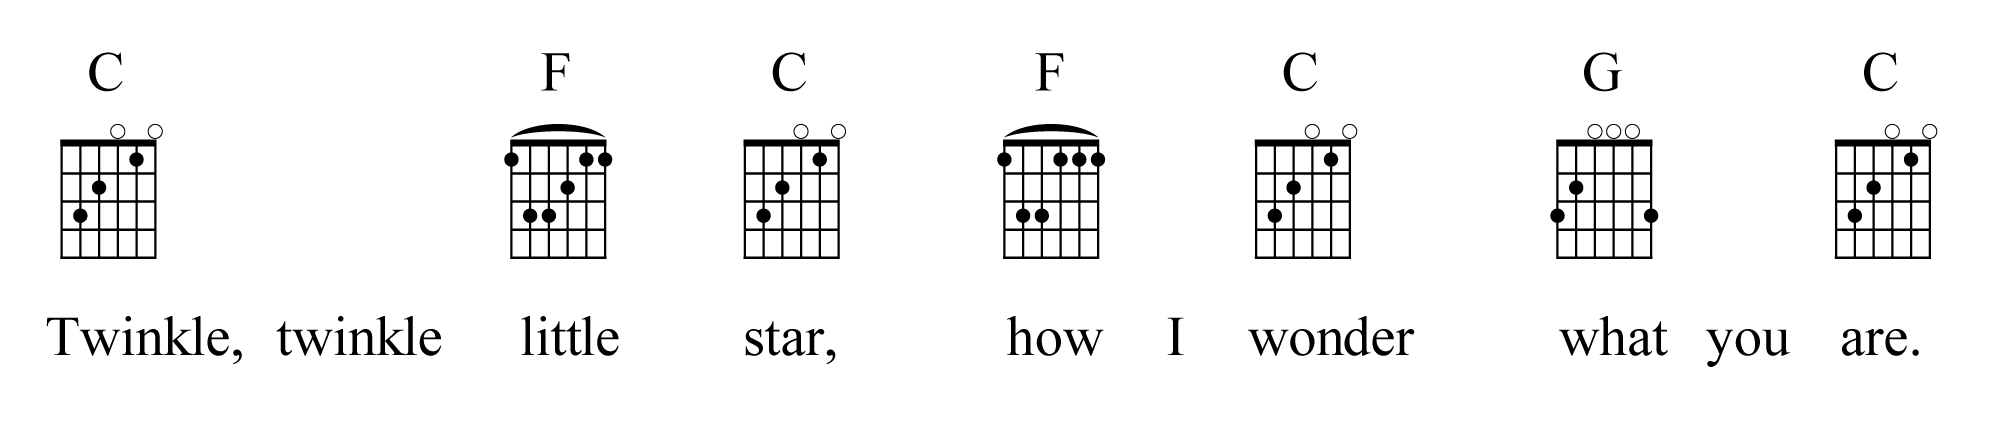 Twinkle twinkle little star guitar chords